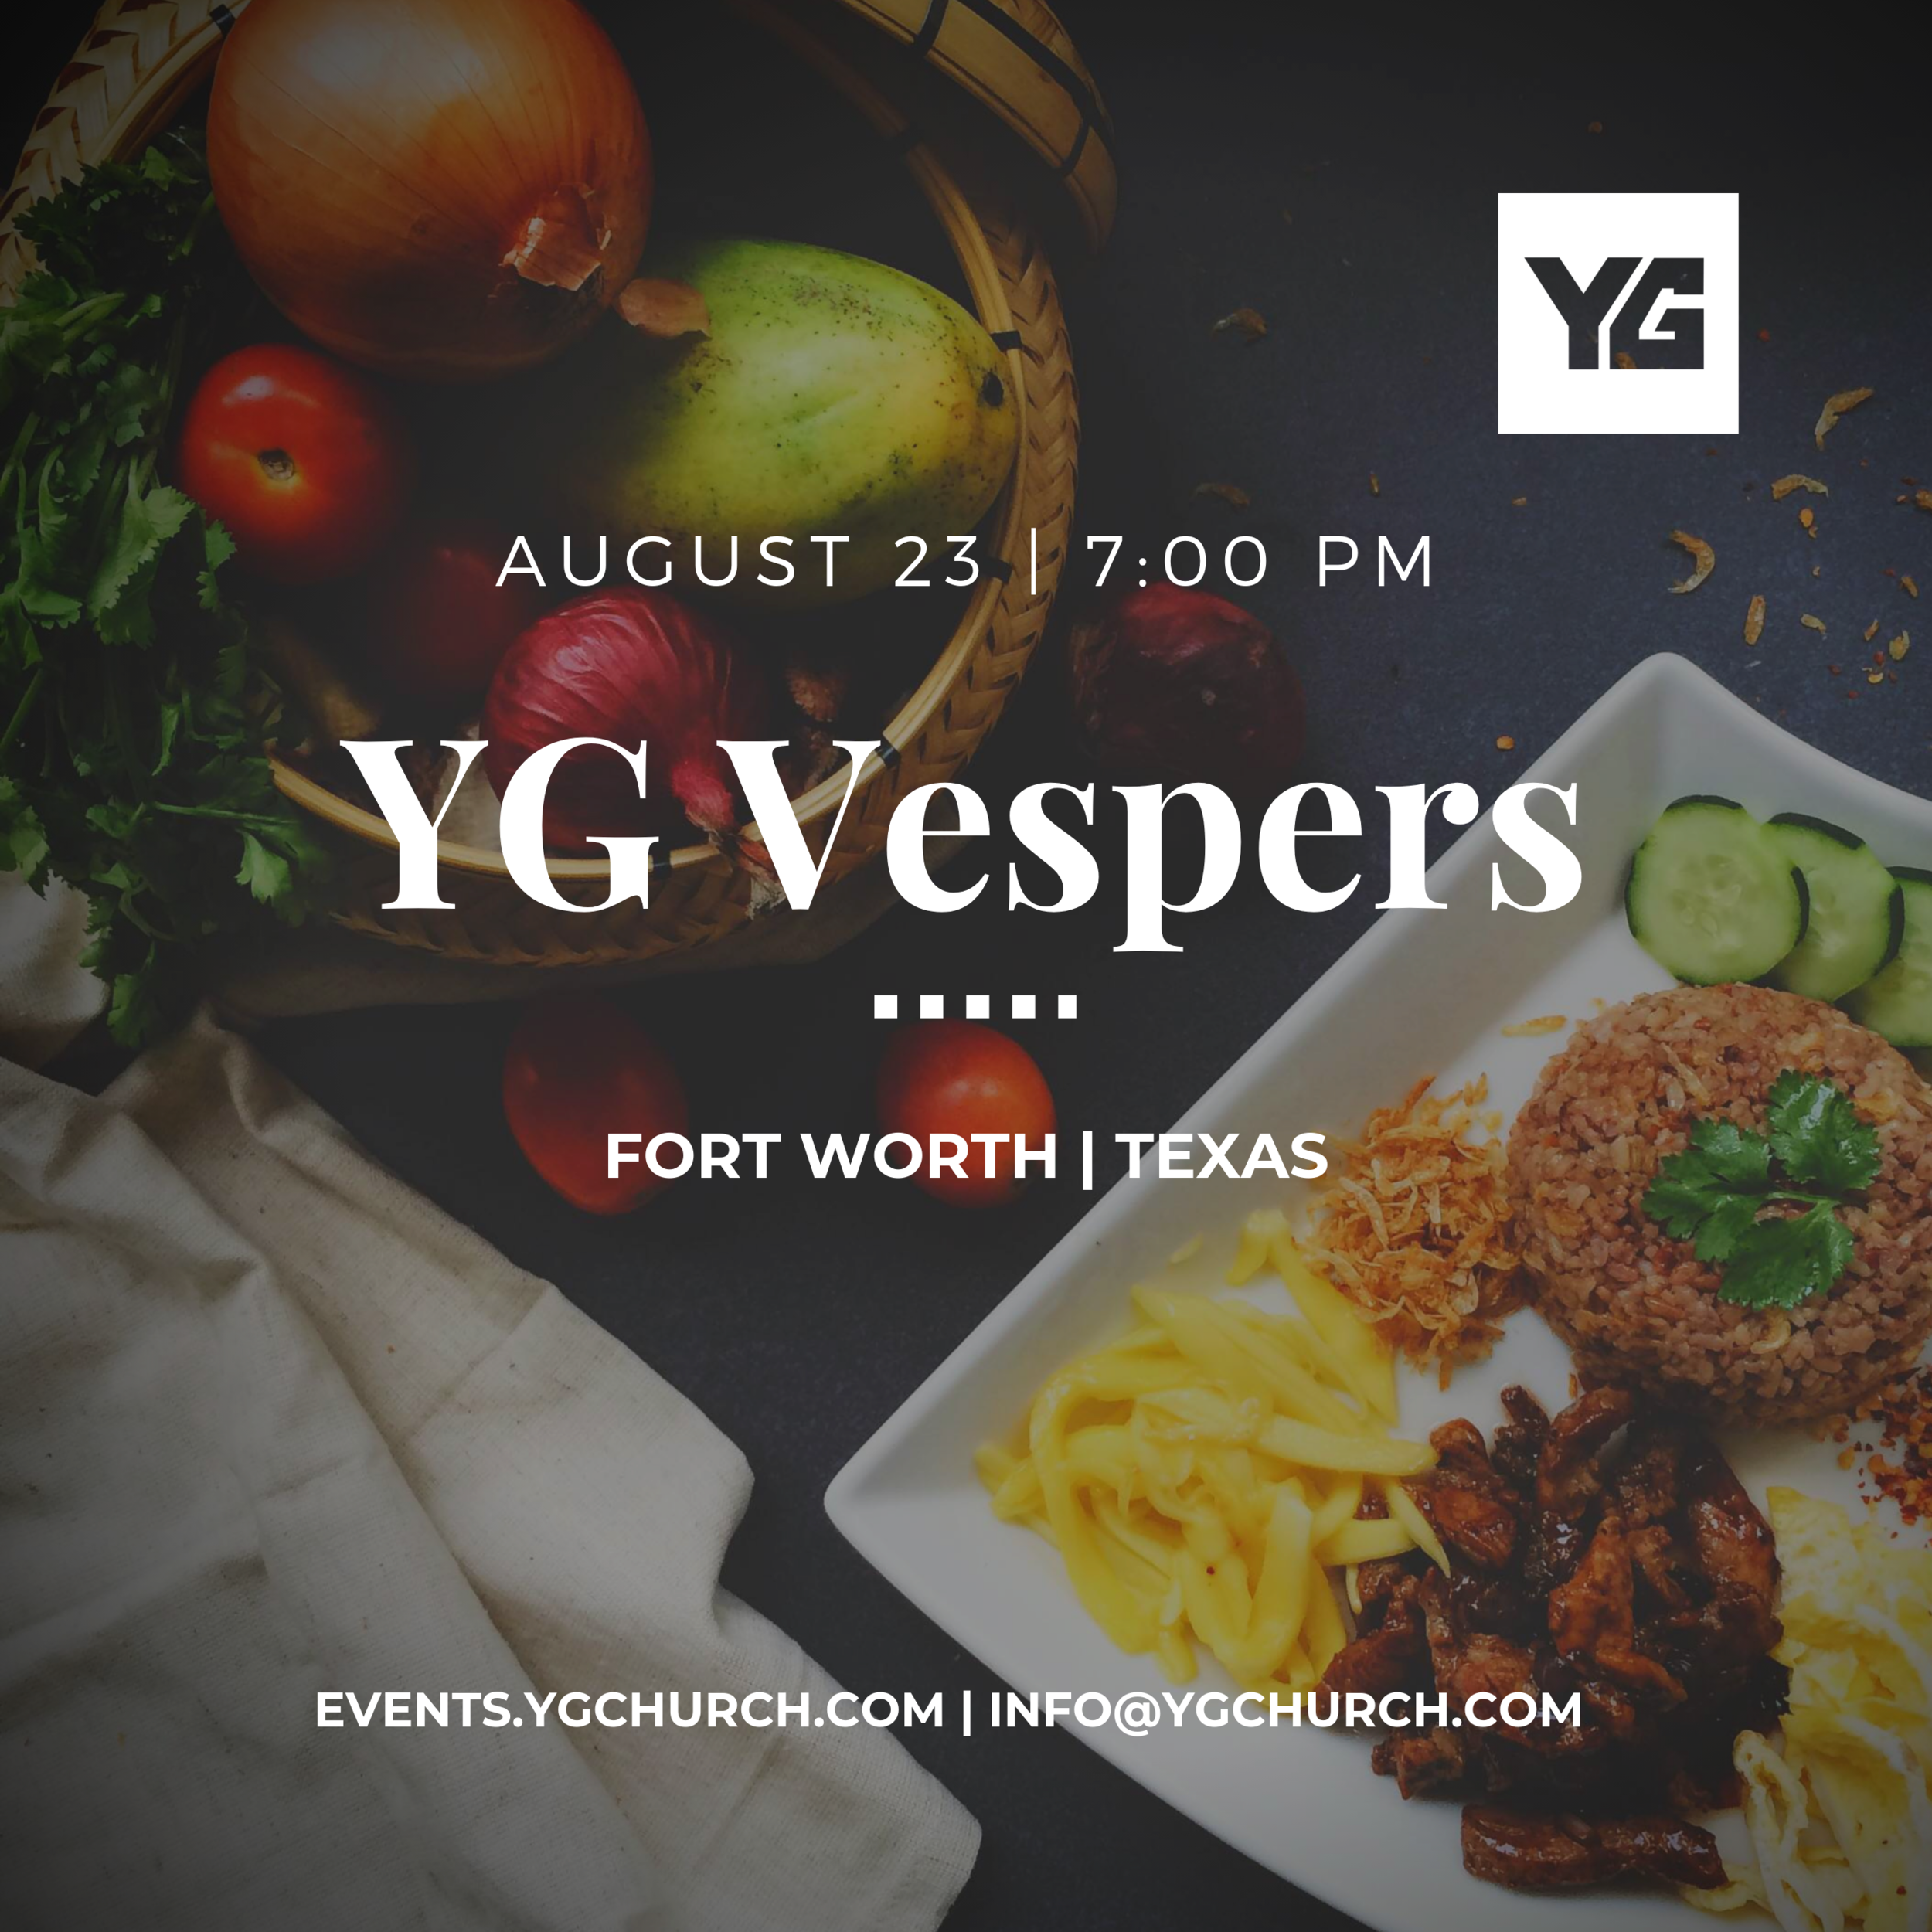 YG VESPERS THIS FRIDAY NIGHT IN FORT WORTH  YG Vespers is a relaxed Friday night gathering which this week features a potluck as well as an interactive worship experience. YG Vespers meet will meet at 7:00 PM. Please click the above icon fill out the  RSVP form  for the address and to RSVP.  For more information about the Younger Generation Church & its variety of ministries and life groups, visit  events.ygchurch.com.